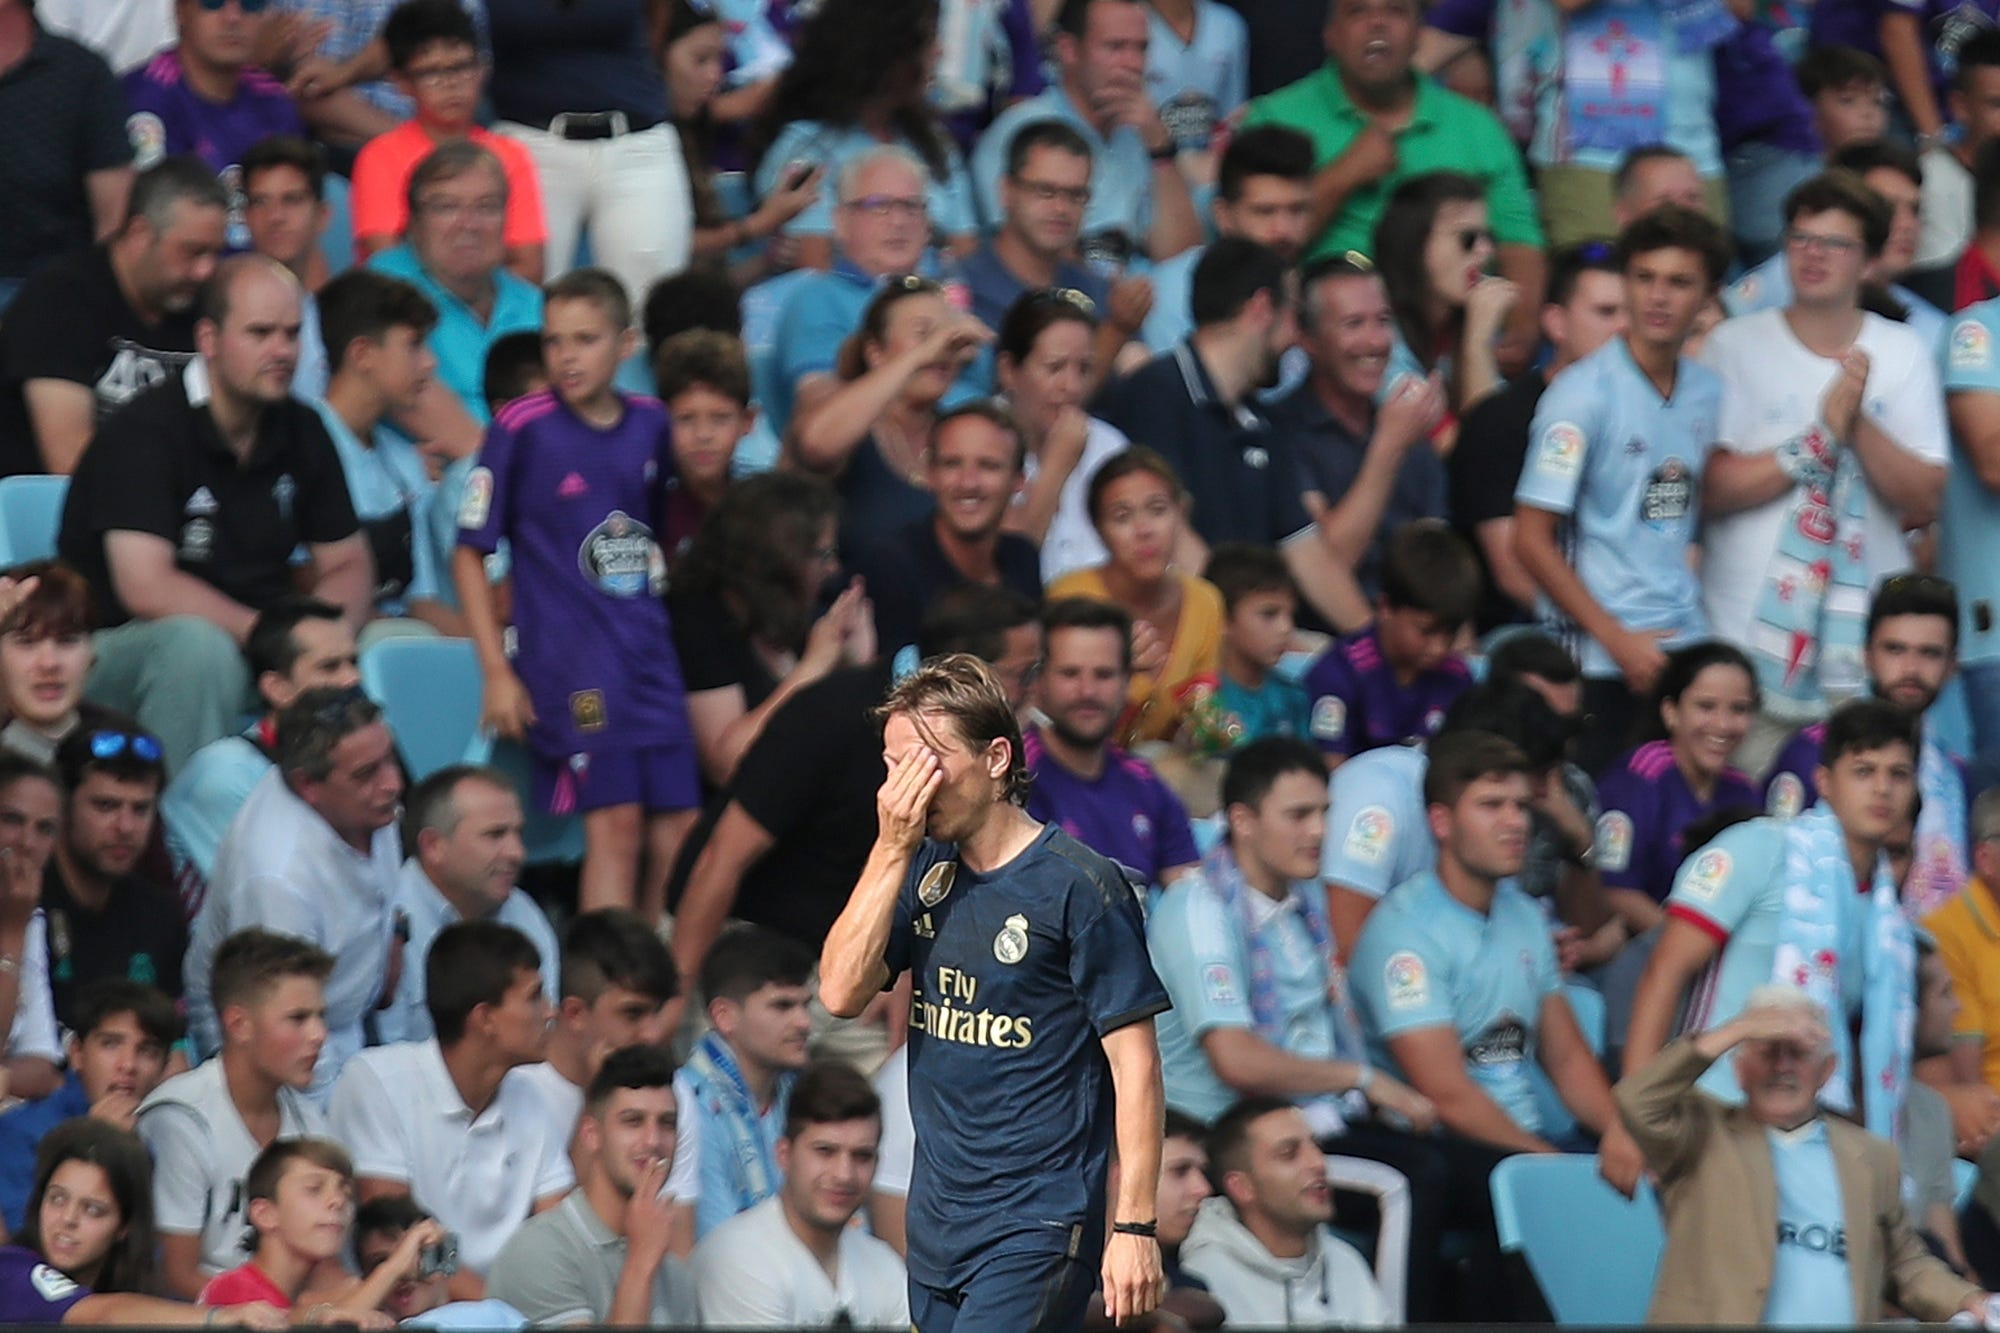 Real Madrid opens Spanish league with 3-1 win over Celta